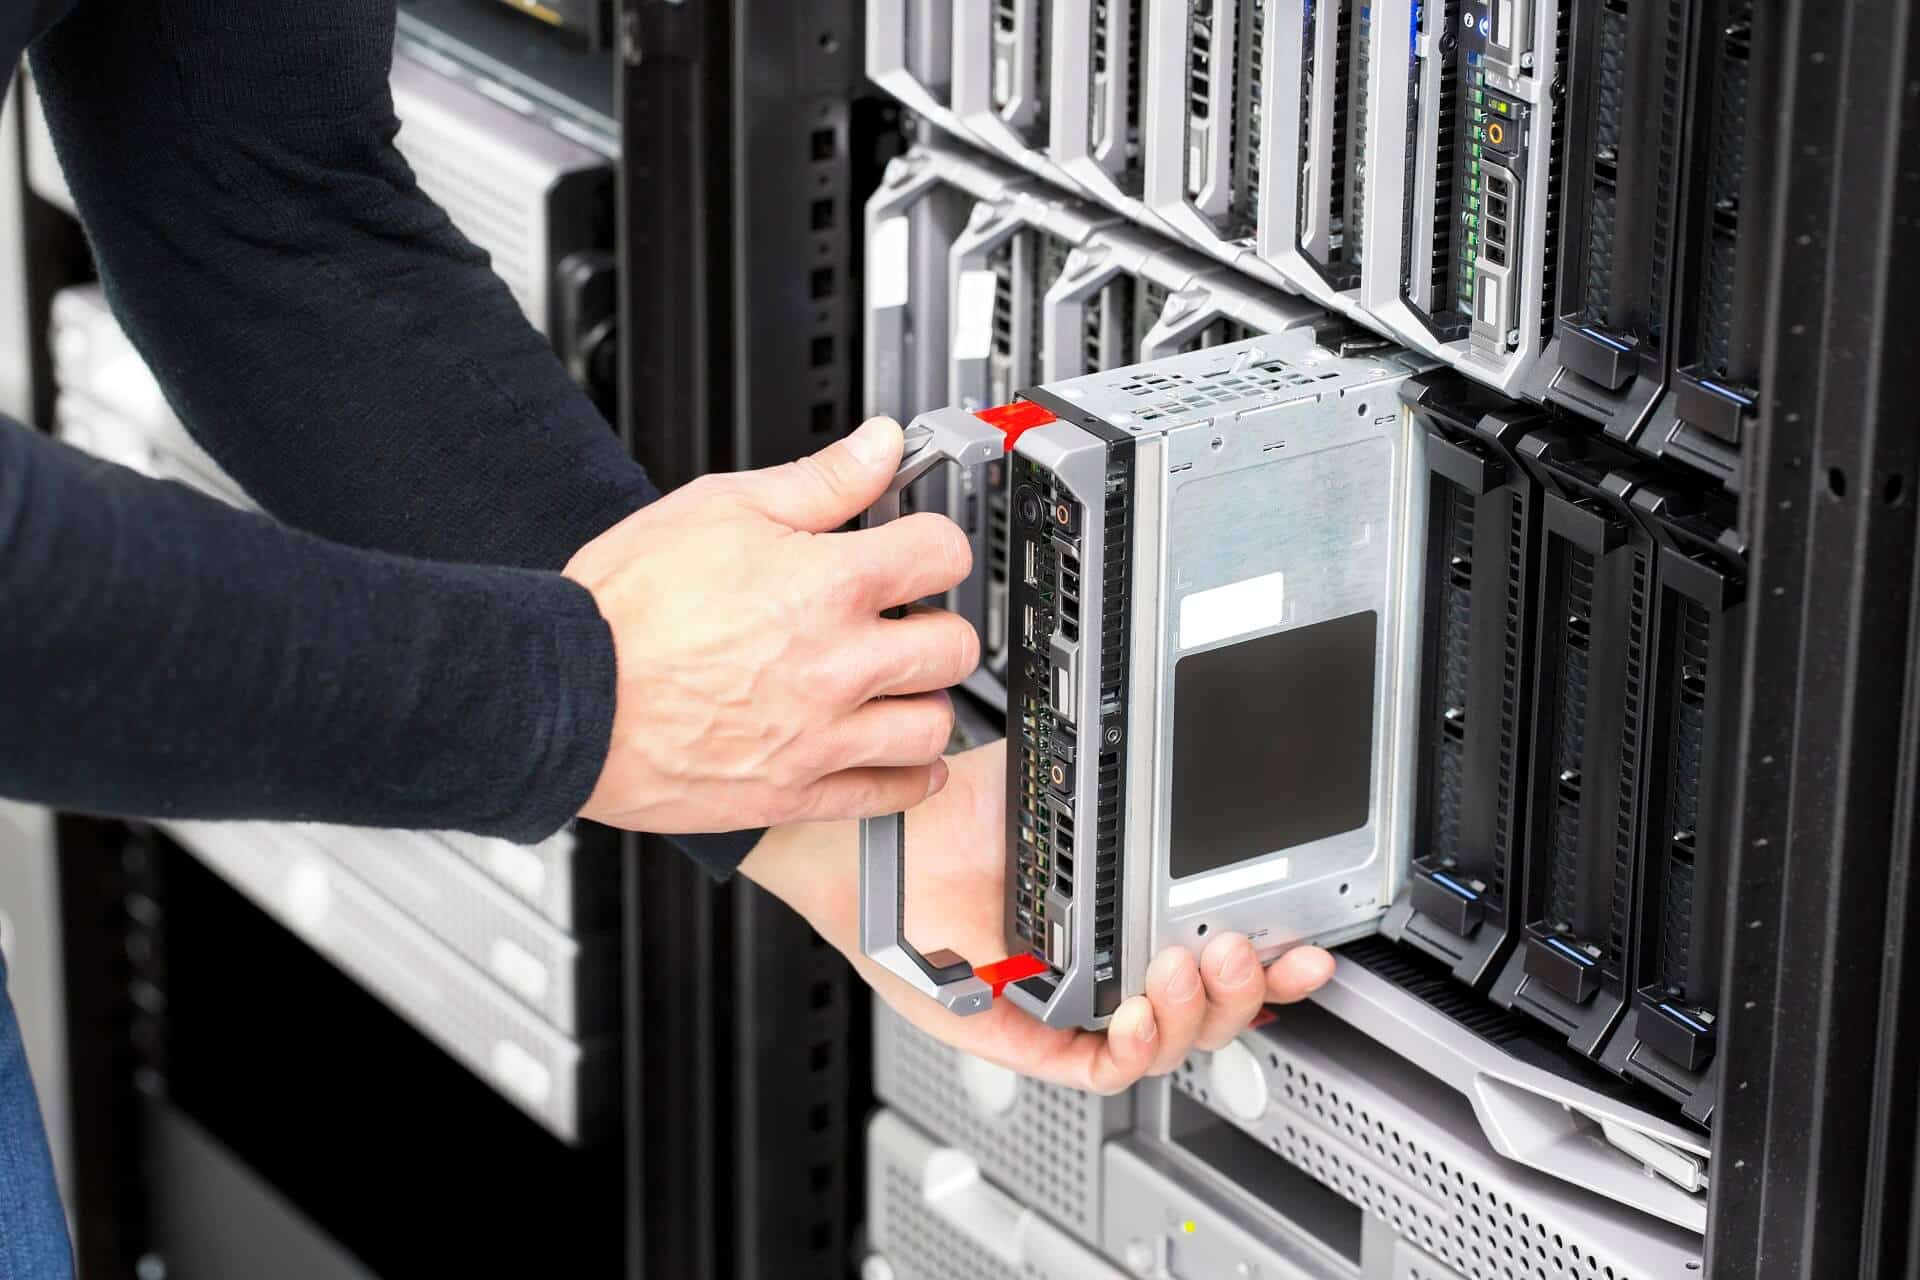 Blade server installation in large datacenter